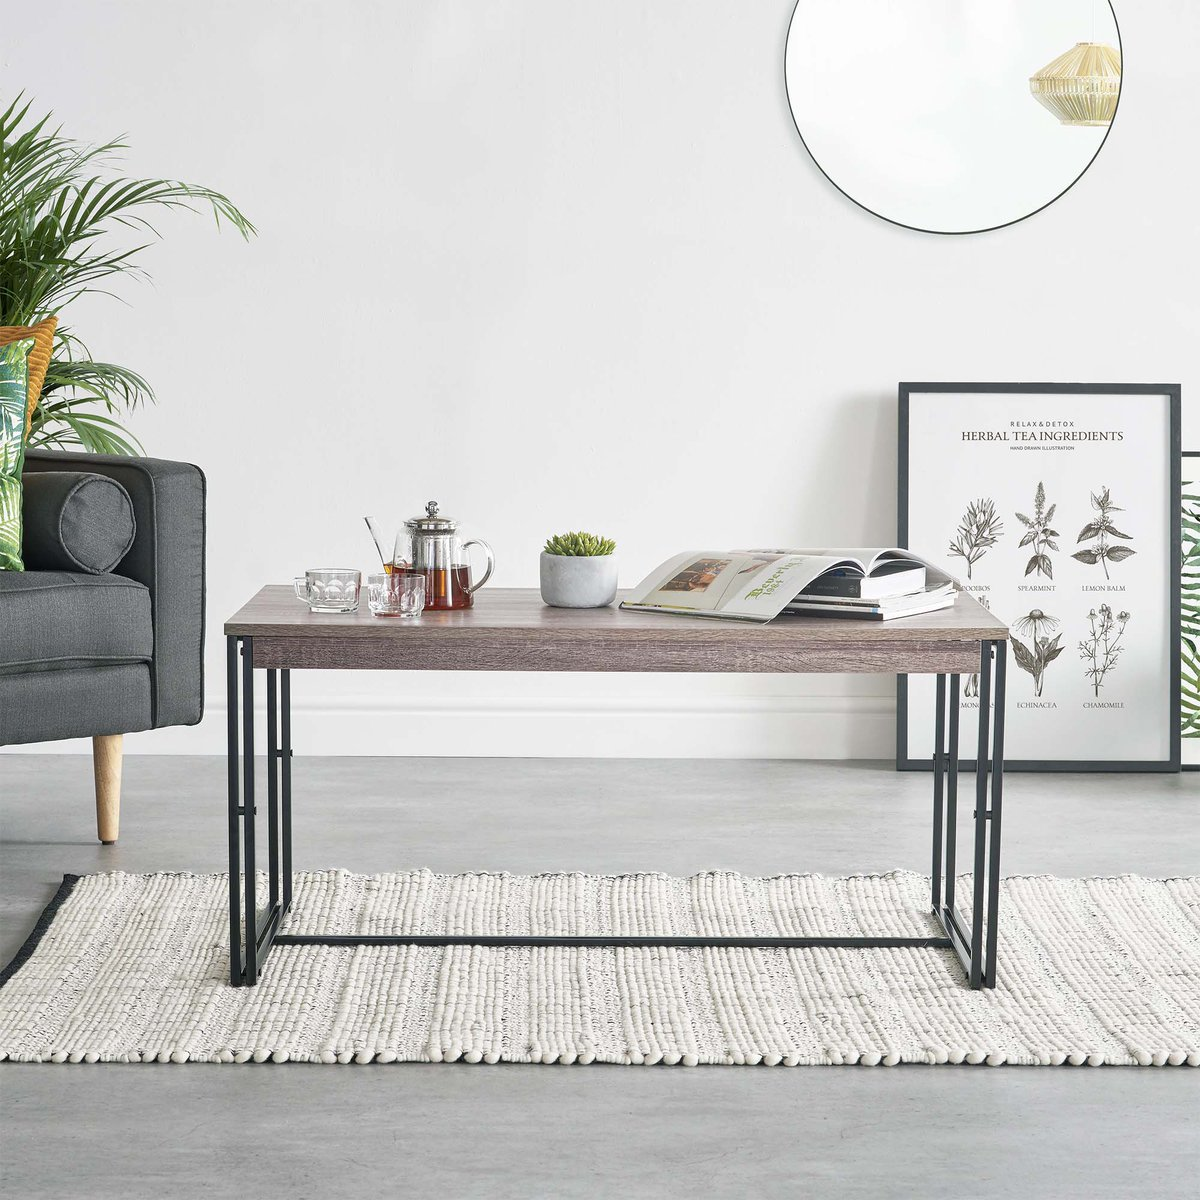 With A Metal Frame And Oak Effect Table Top You Ll Love The Clic Yet Contemporary Combination Now Https Goo Gl Aculyu Pic Twitter